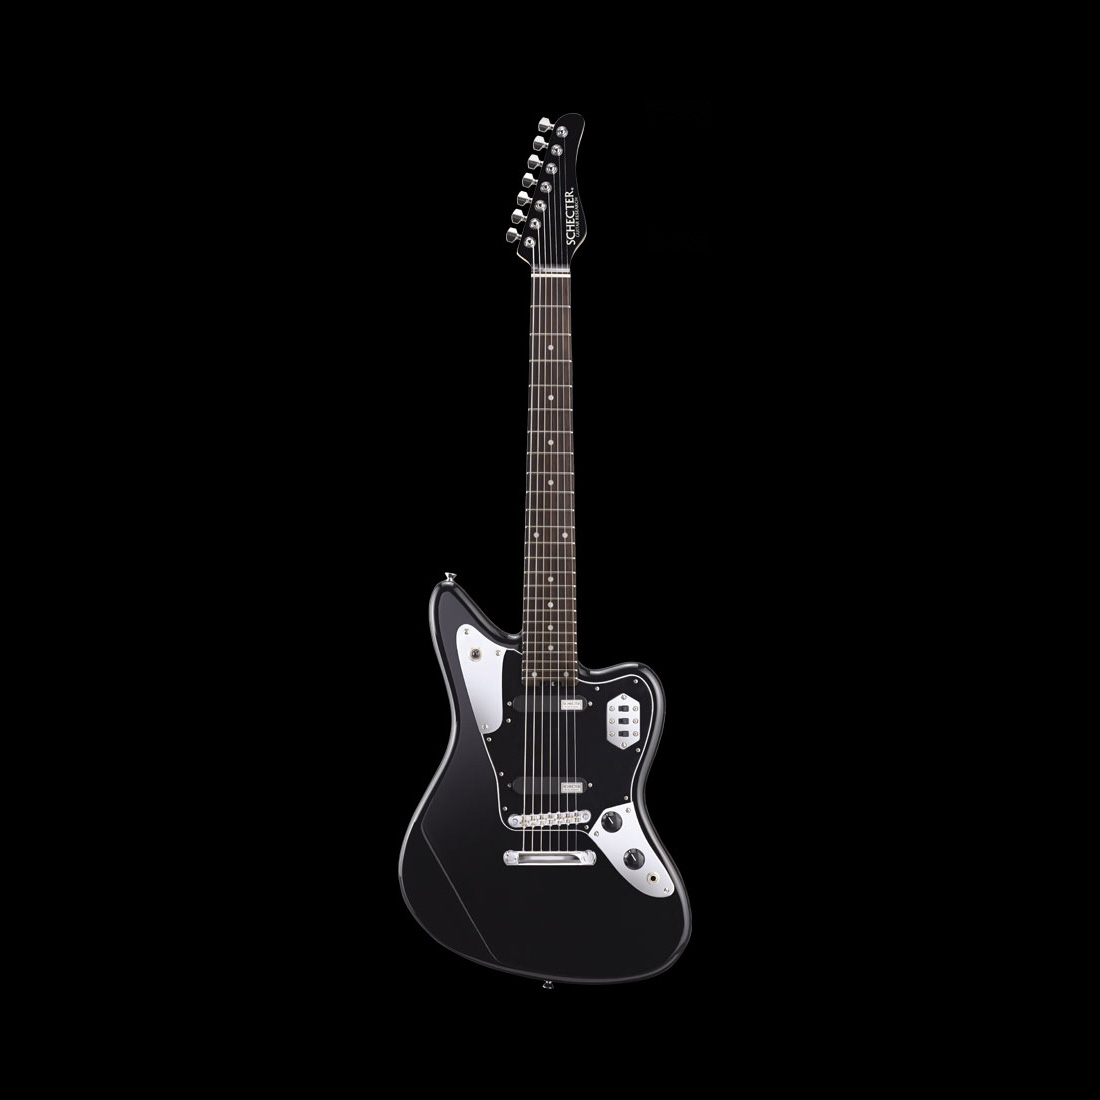 Schecter / AR-07-R Black シェクター エレキギター 【お取り寄せ商品/納期別途ご案内】